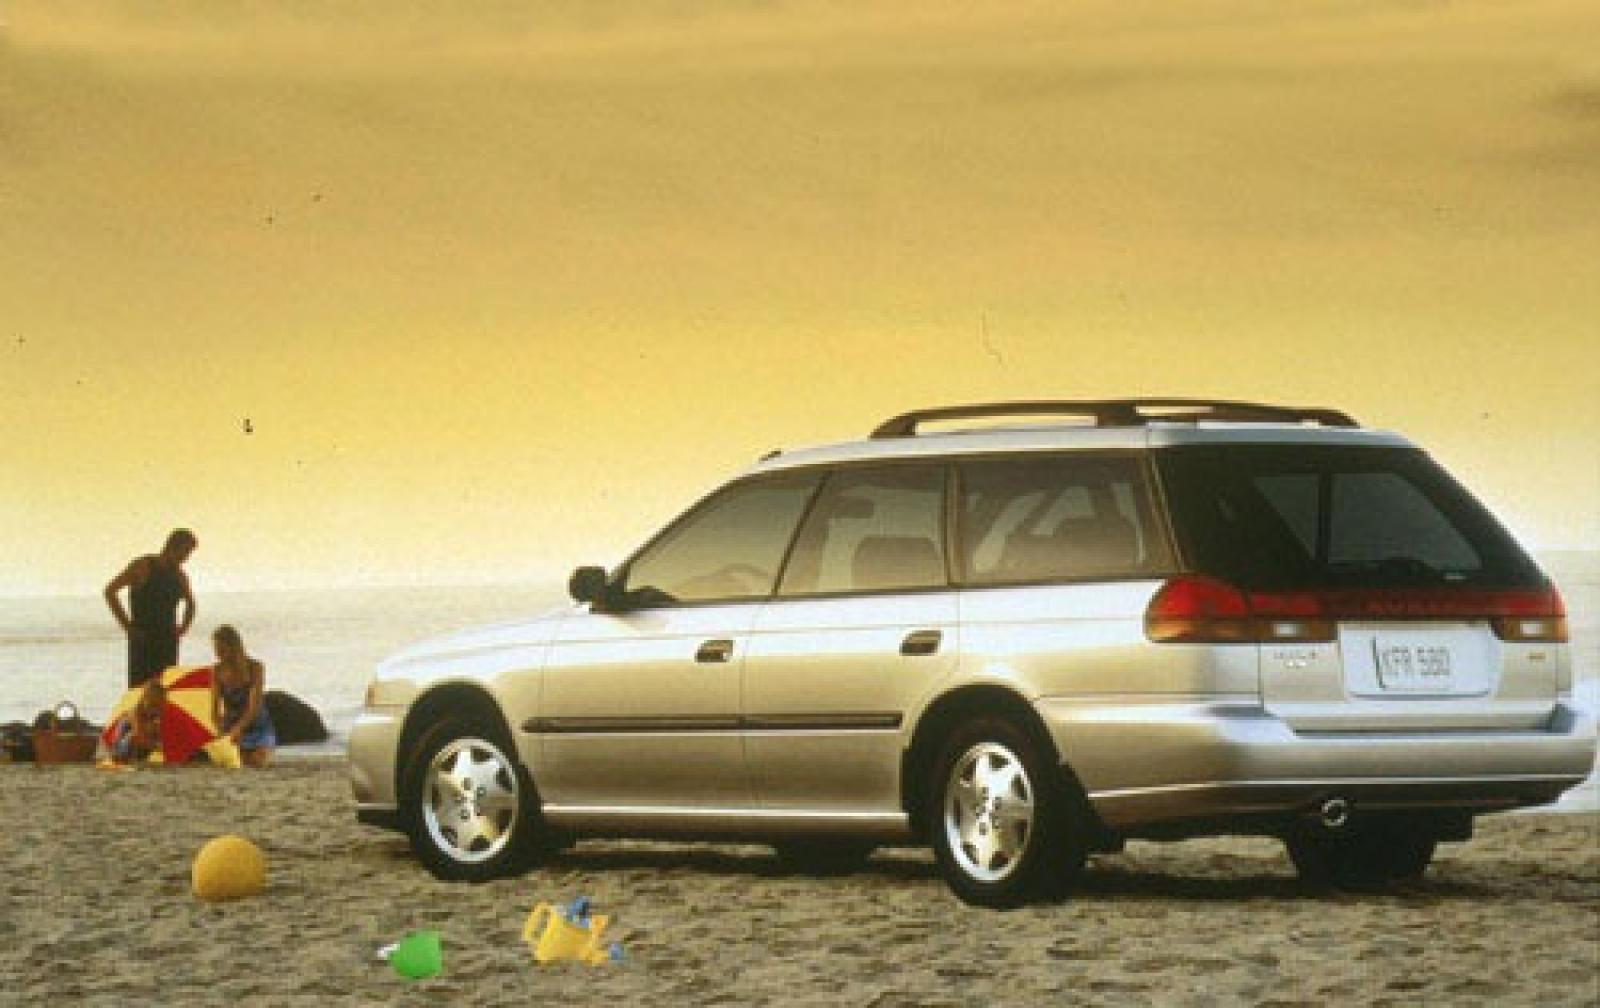 1998 Subaru Legacy Information And Photos Zombiedrive Outback 800 1024 1280 1600 Origin